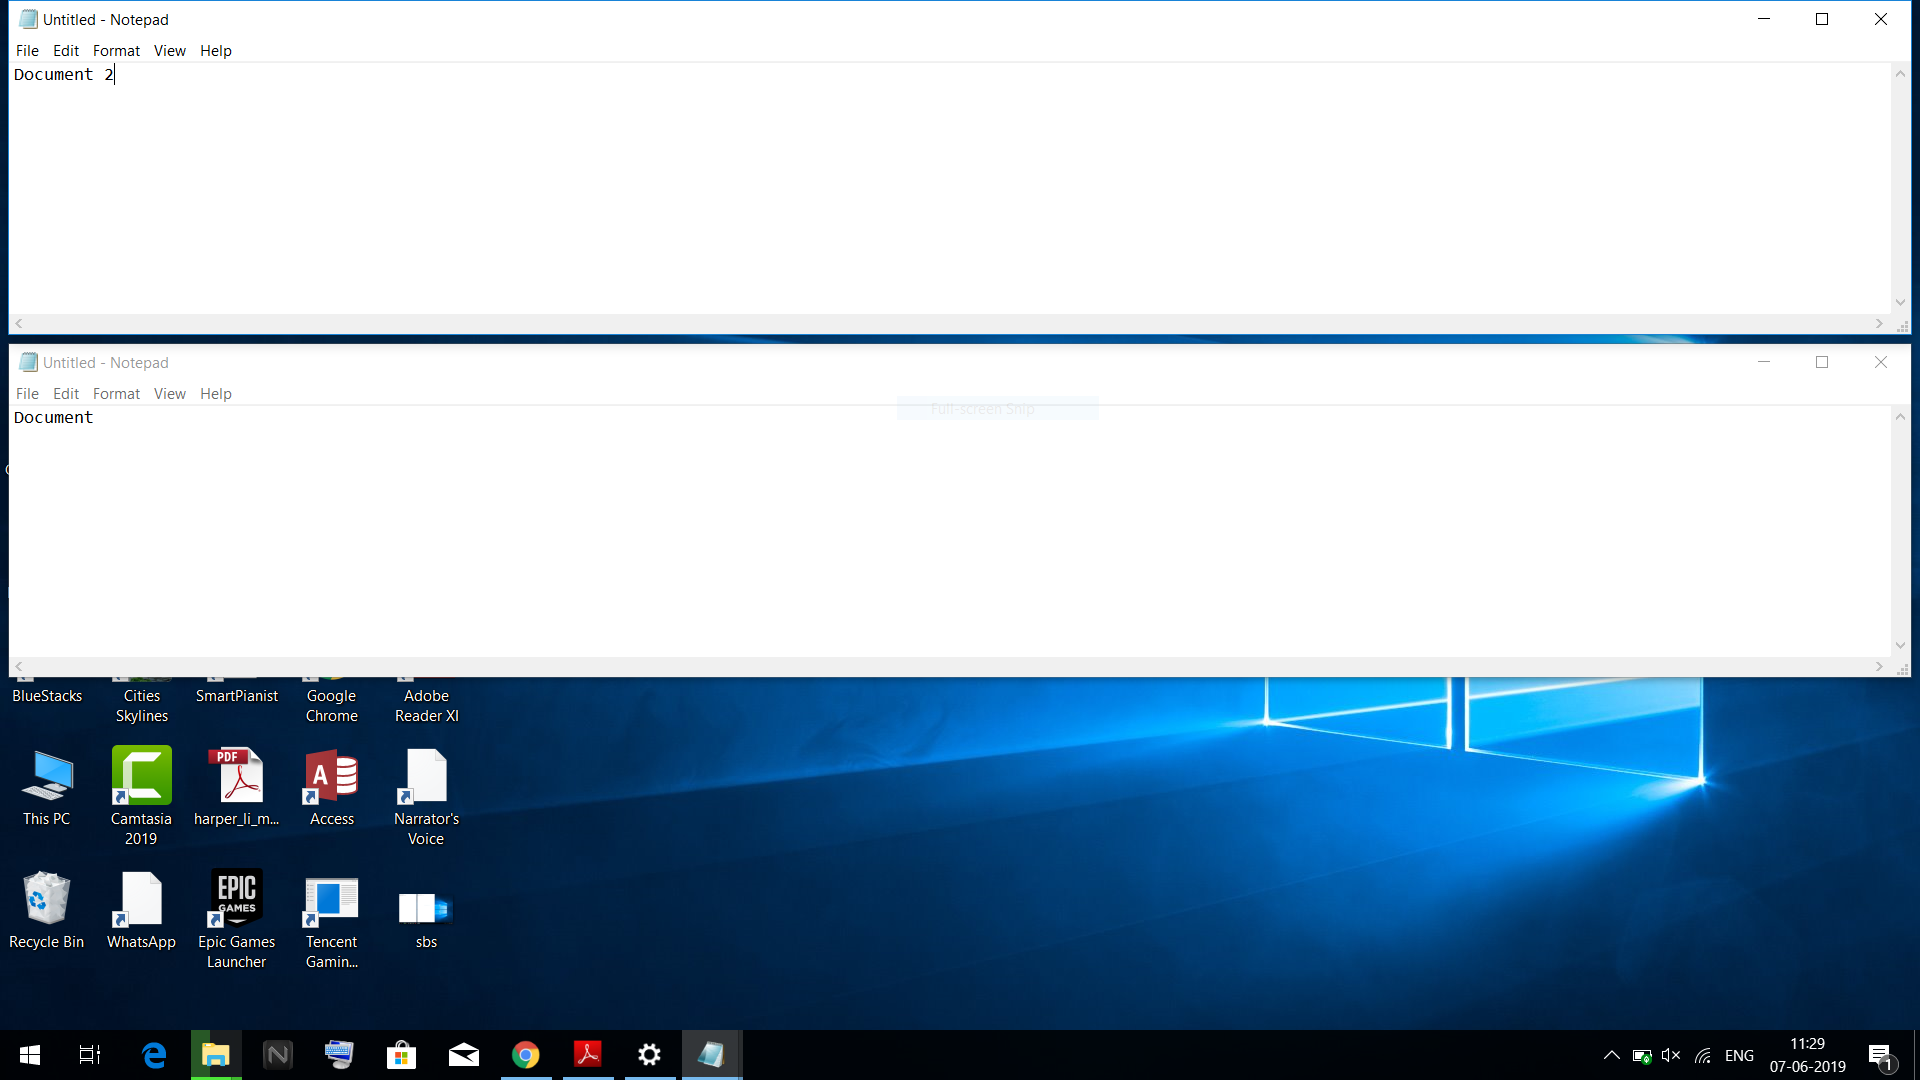 Desktop occupies space in side by side and stacked mode 46f8fc8c-d6d1-4cb7-80ba-c4e33cba7ef0?upload=true.png